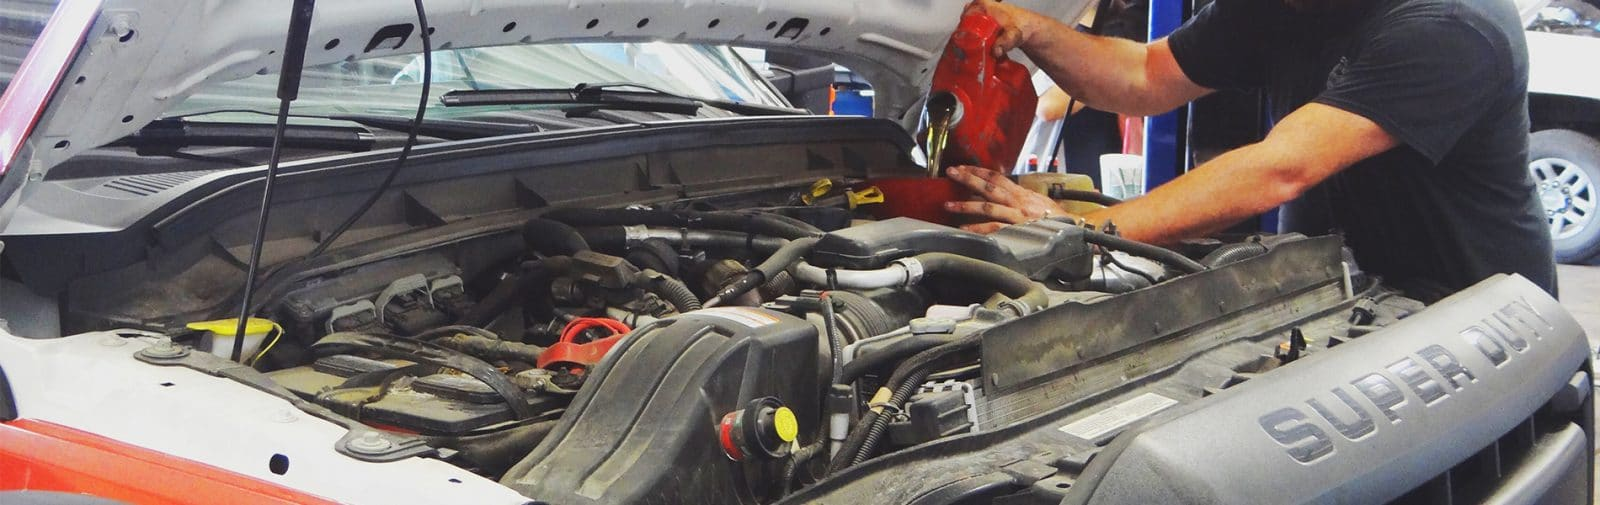 Dowell Automotive Repair Your Local Mechanic In Lafayette Indiana